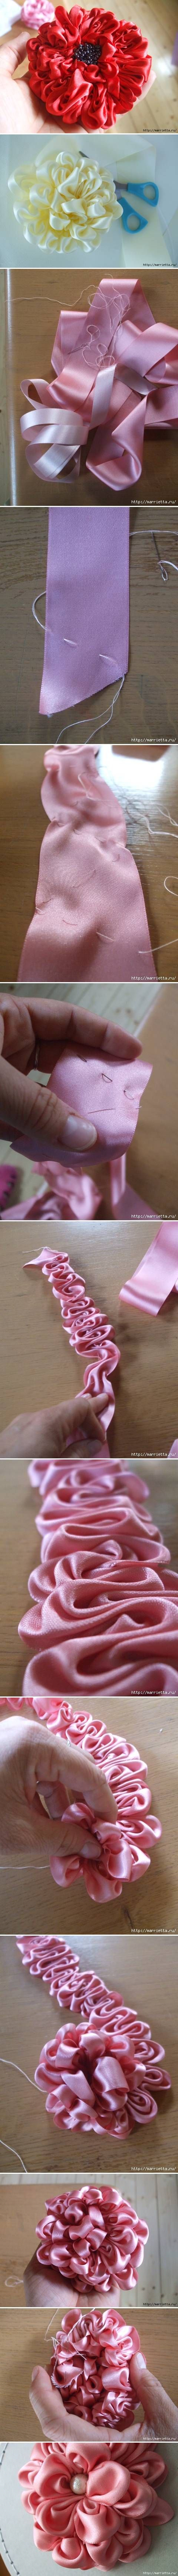 These DIY Ribbon Flowers look awesome! DIY Easy Ribbon Dahlia Flower DIY Project #DIY #Ribbon #Flowers